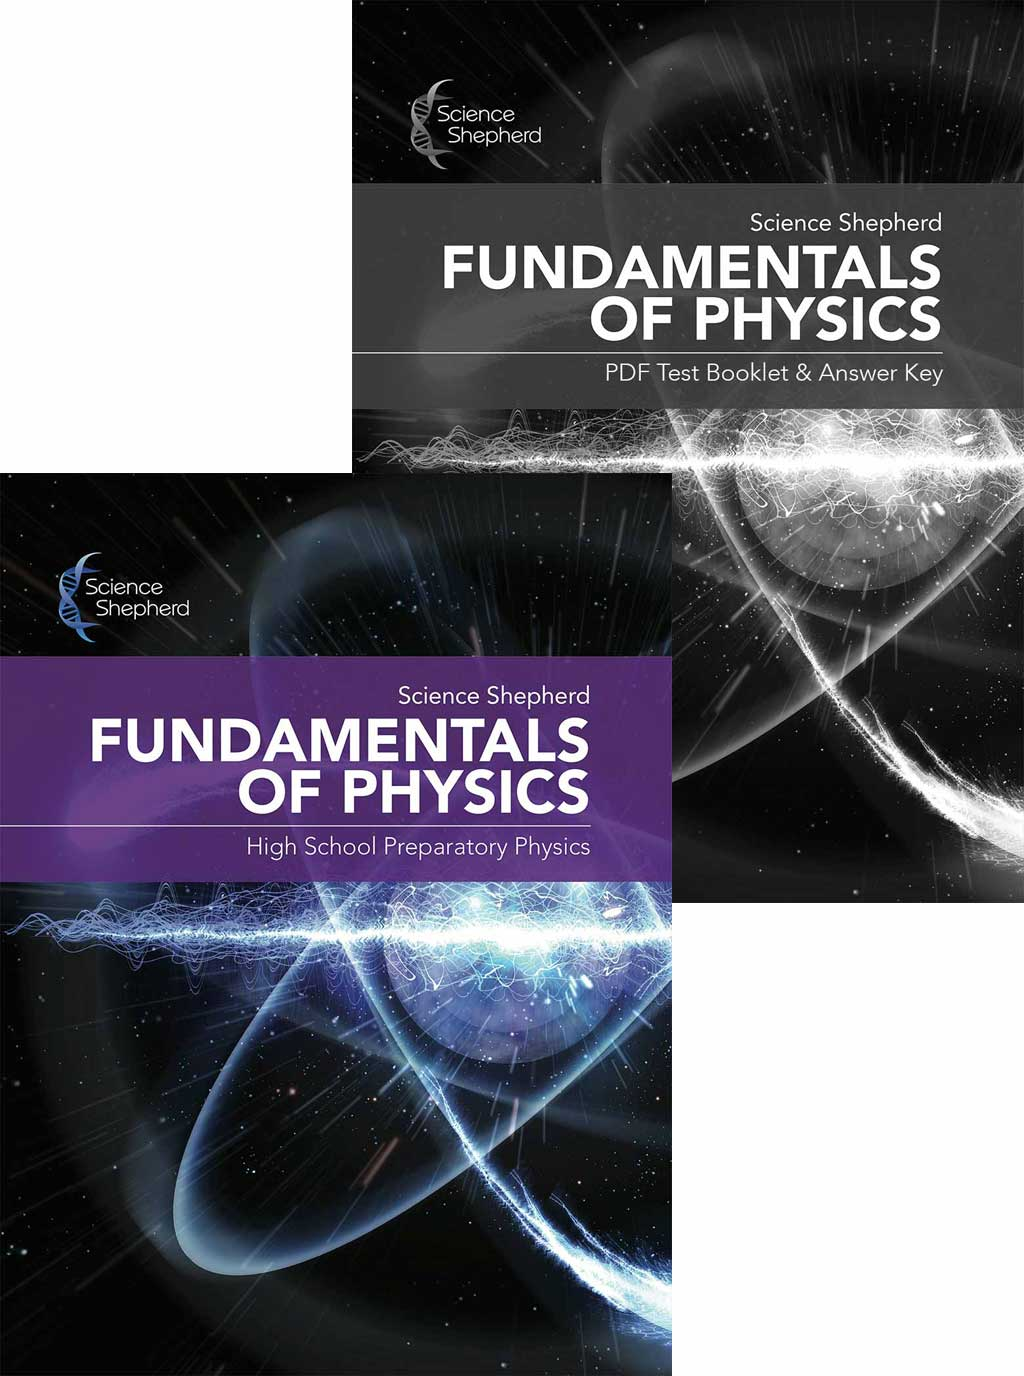 Science Shepherd homeschool physics curriculum bundle with textbook and test/answer key packet